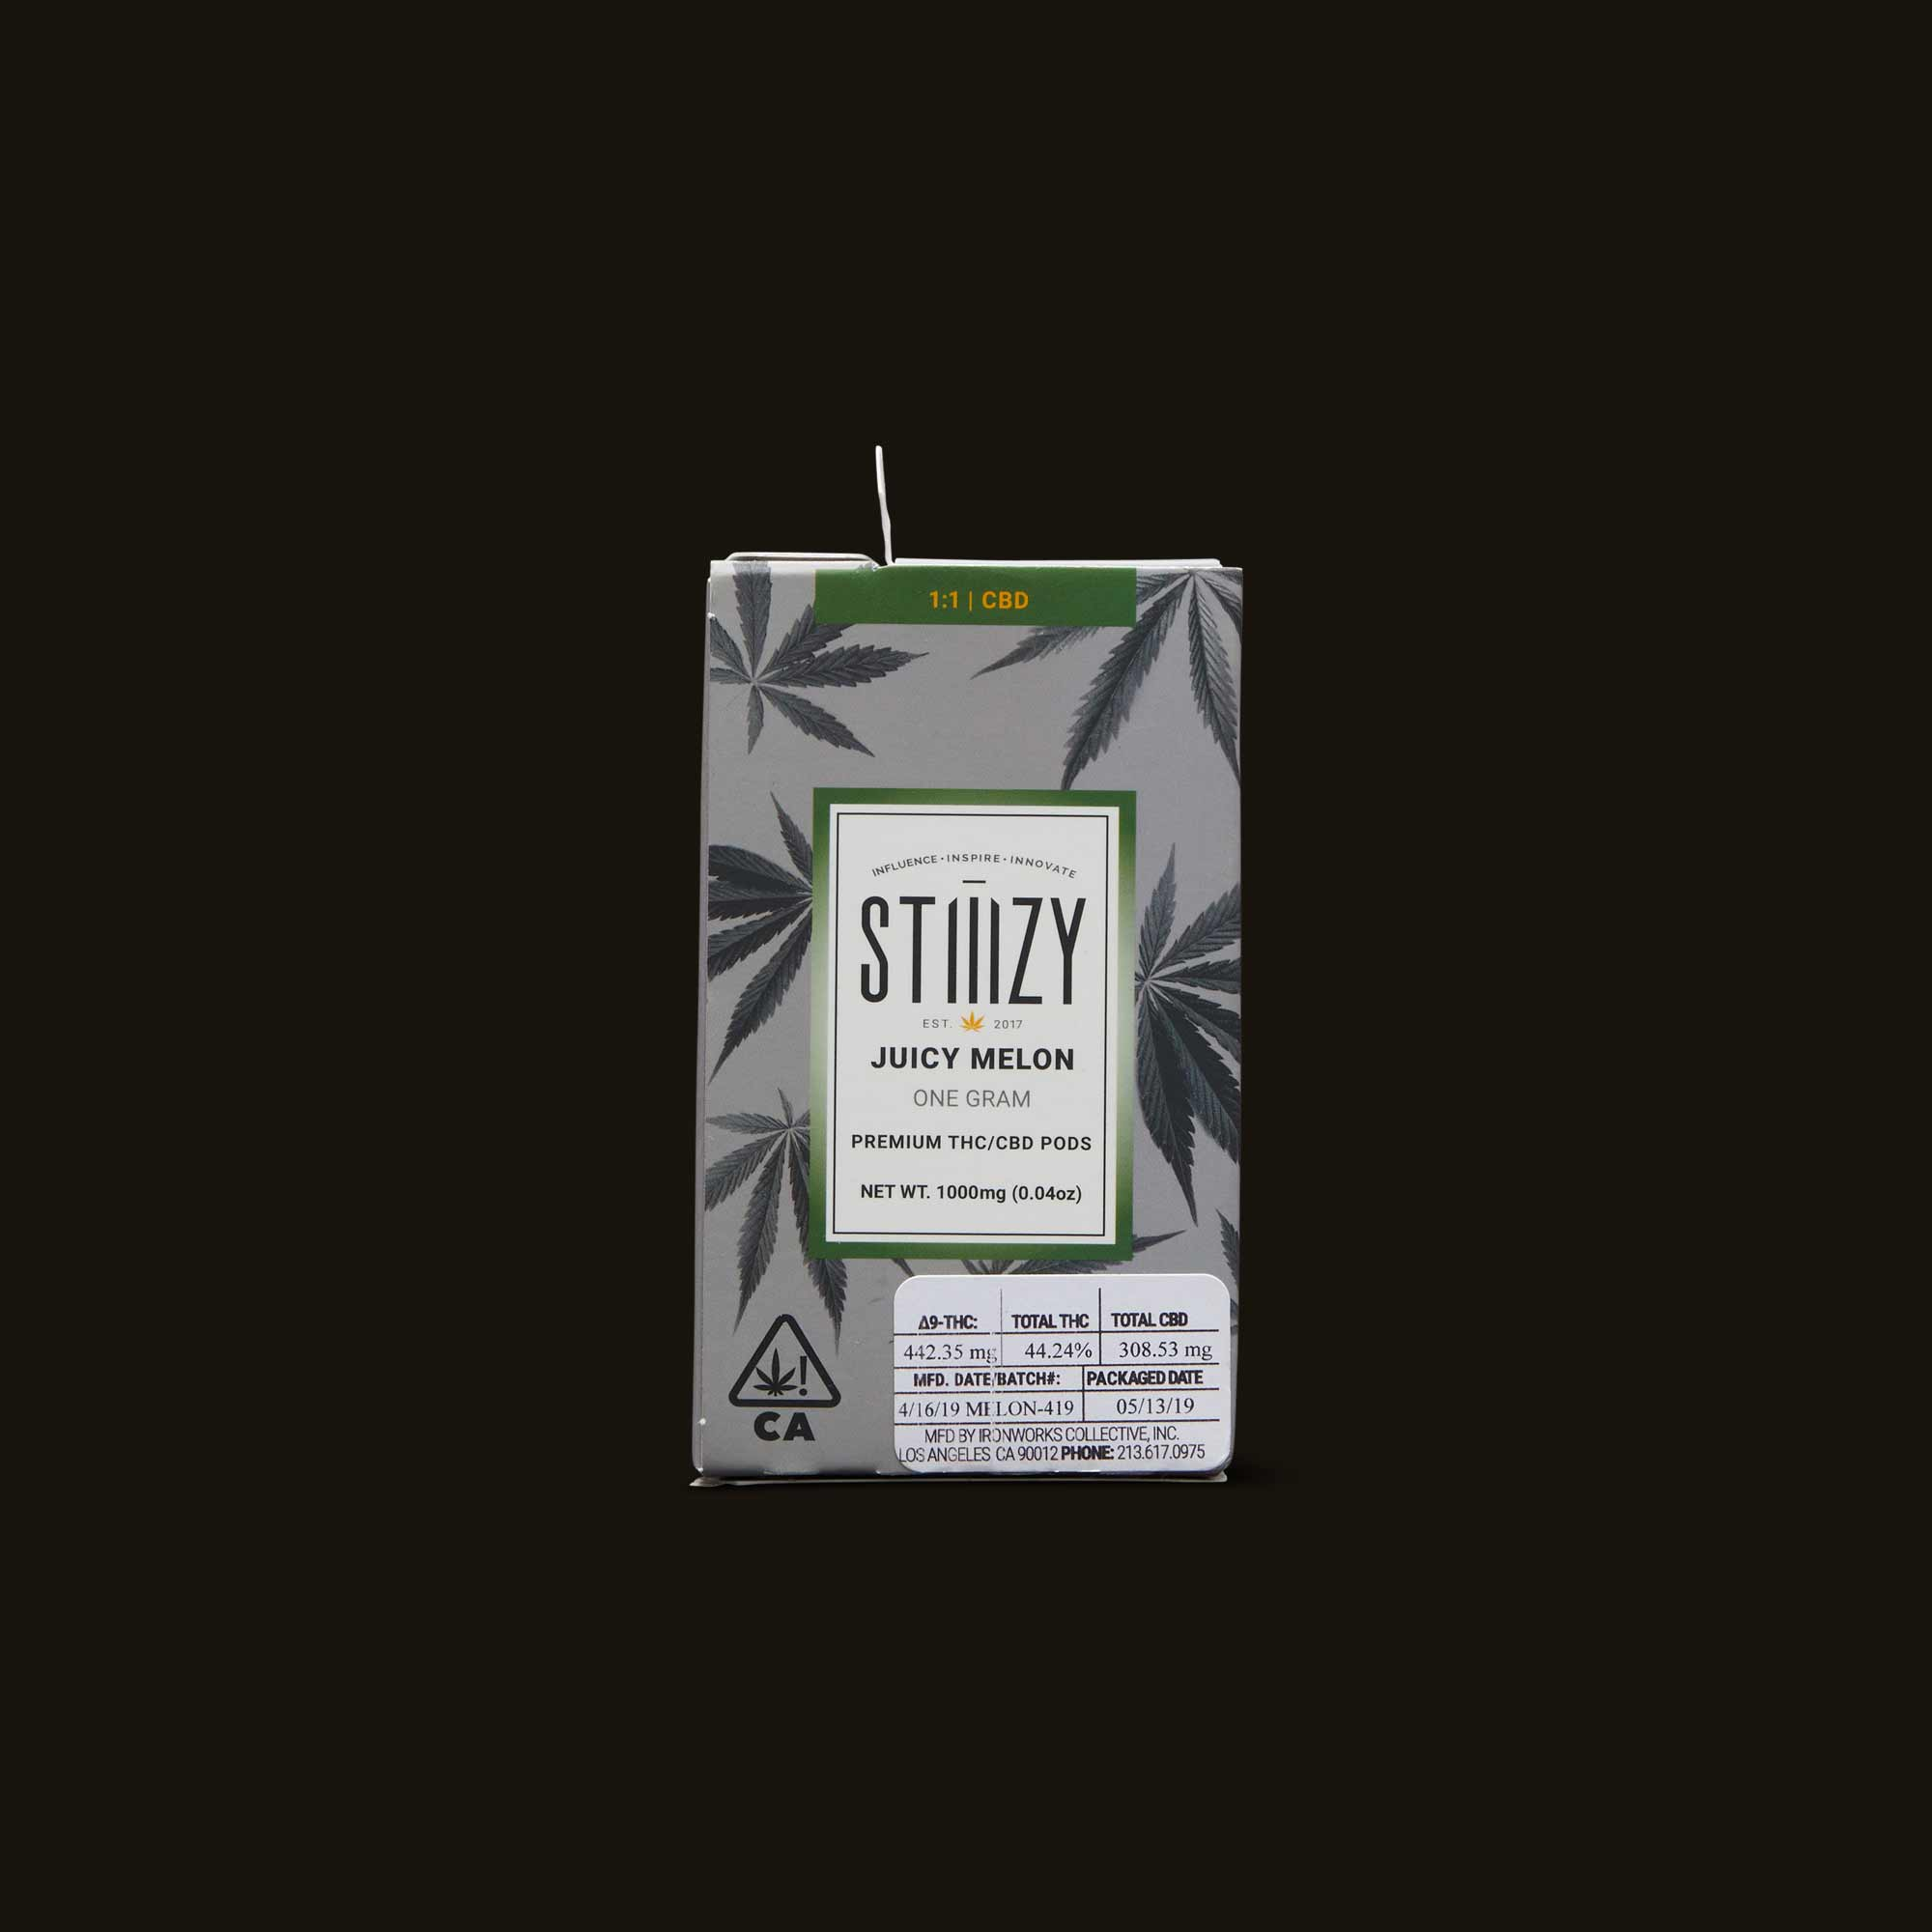 Stiizy Juicy Melon Pod Package stating One Gram, THC/CBD 1:1 ratio